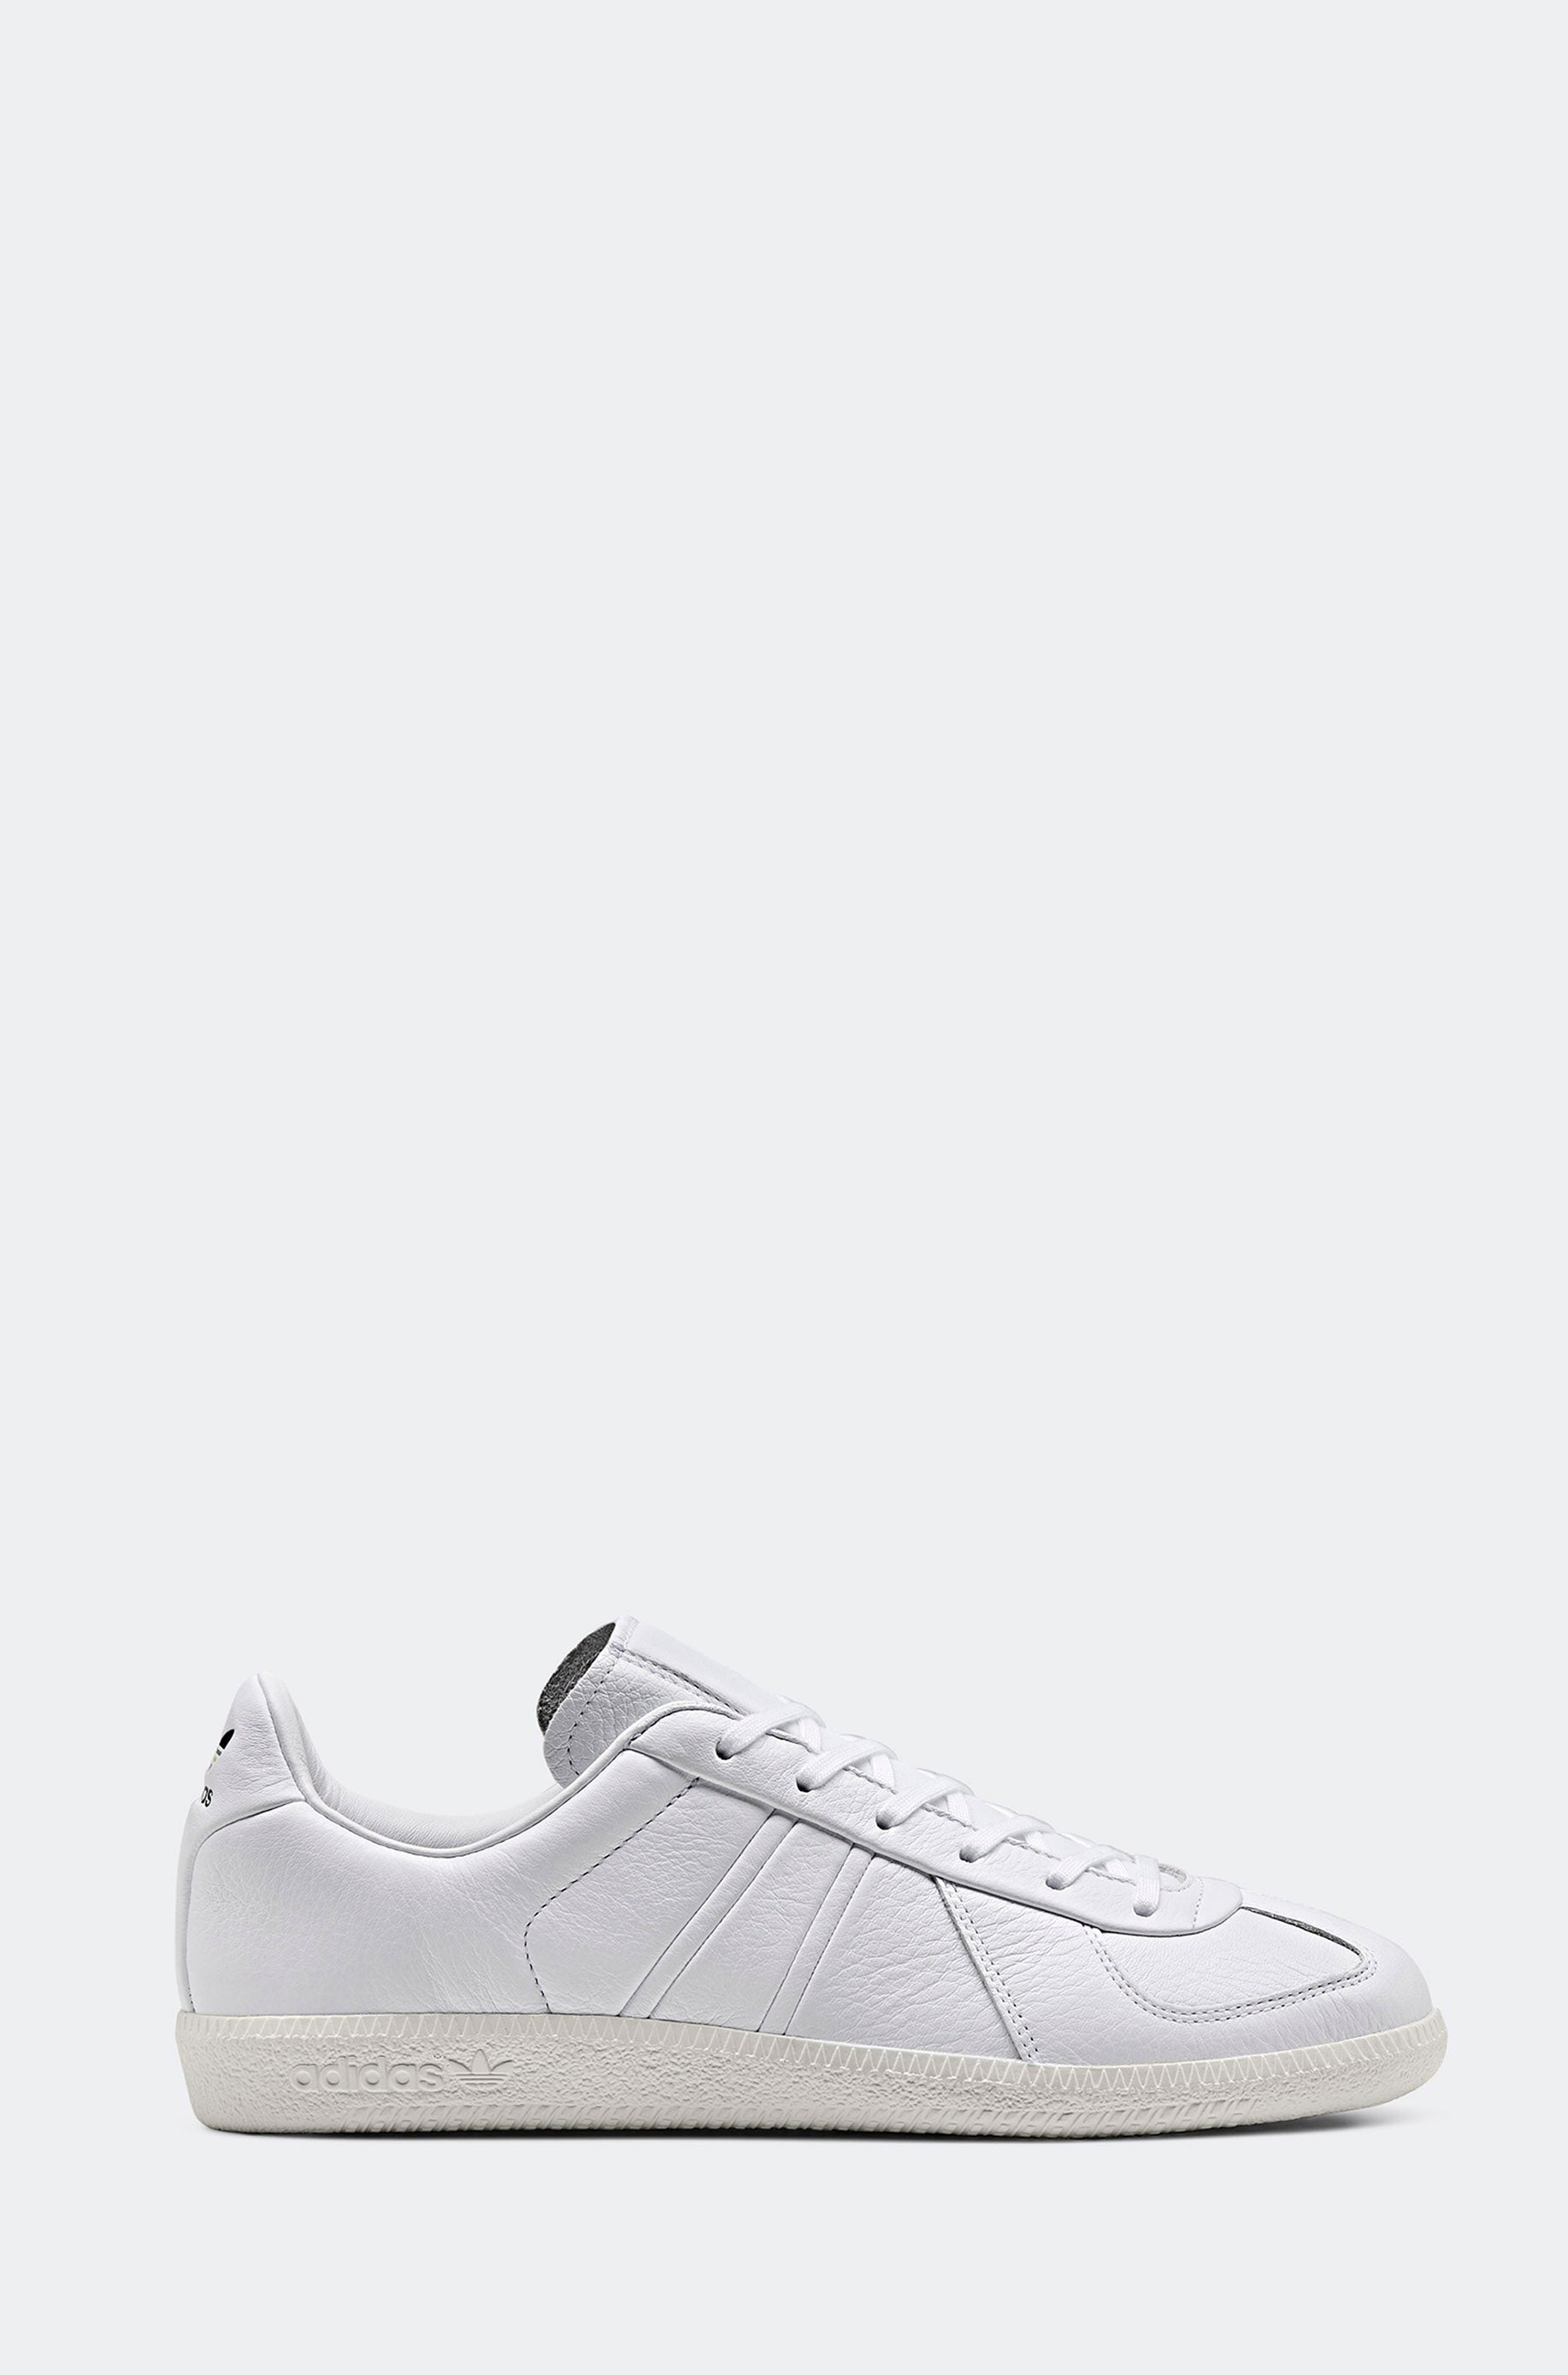 Bw Army Oyster (White)